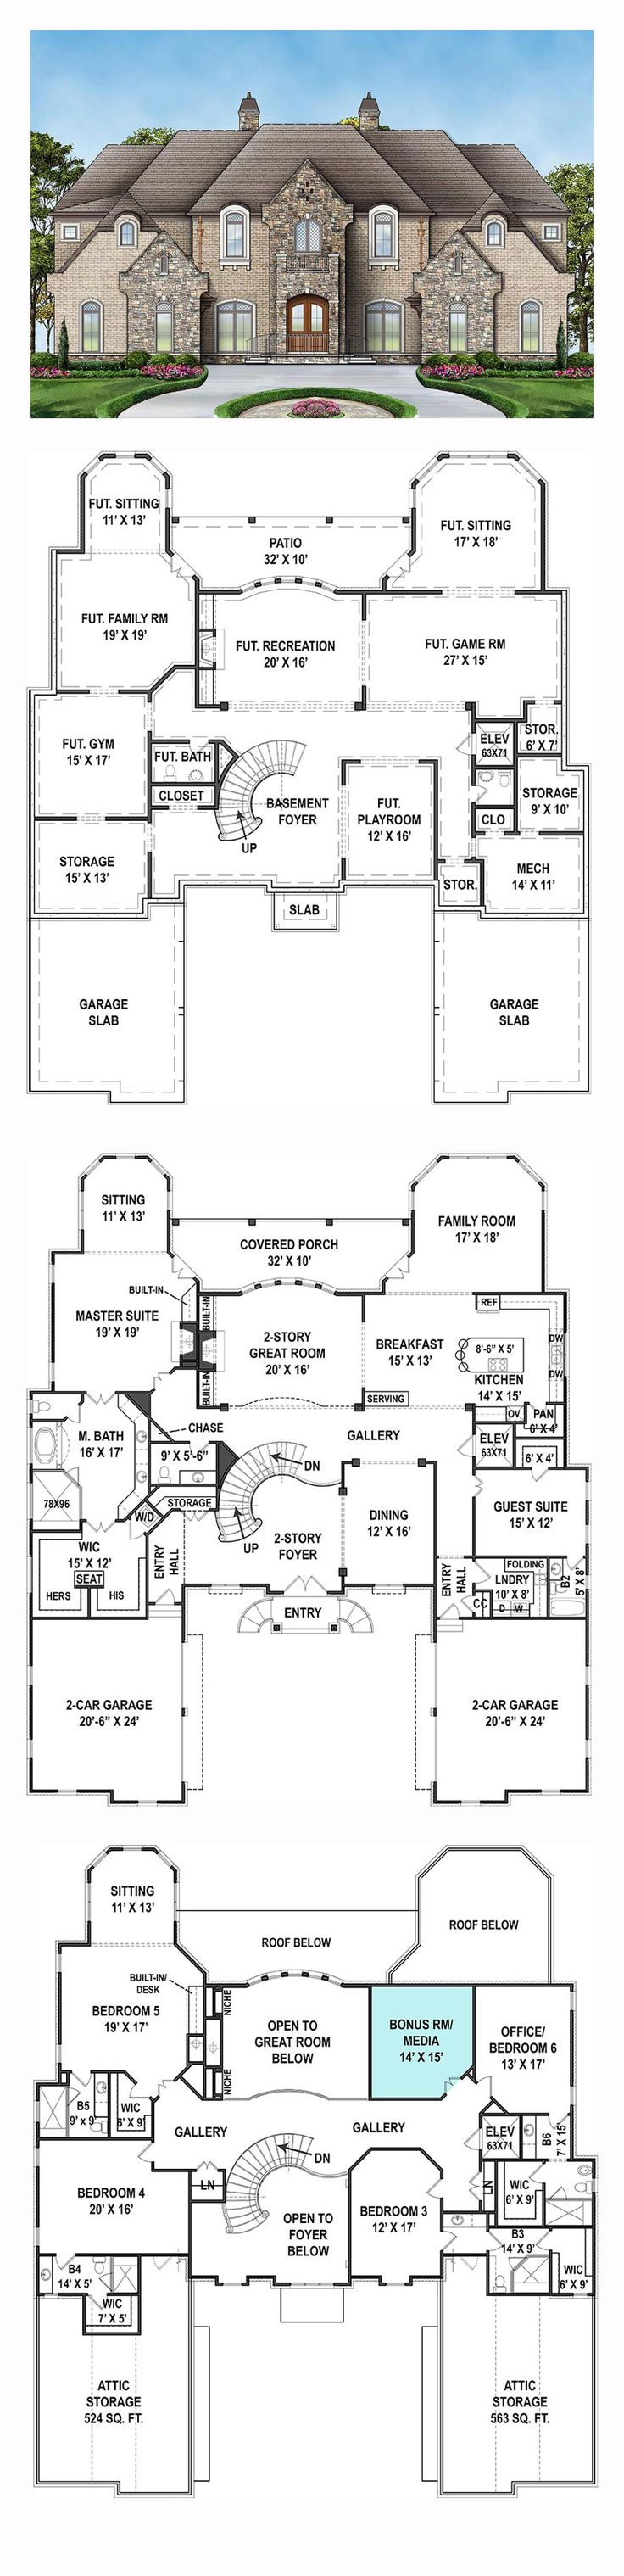 best 25 6 bedroom house plans ideas only on pinterest european french country house plan 72171